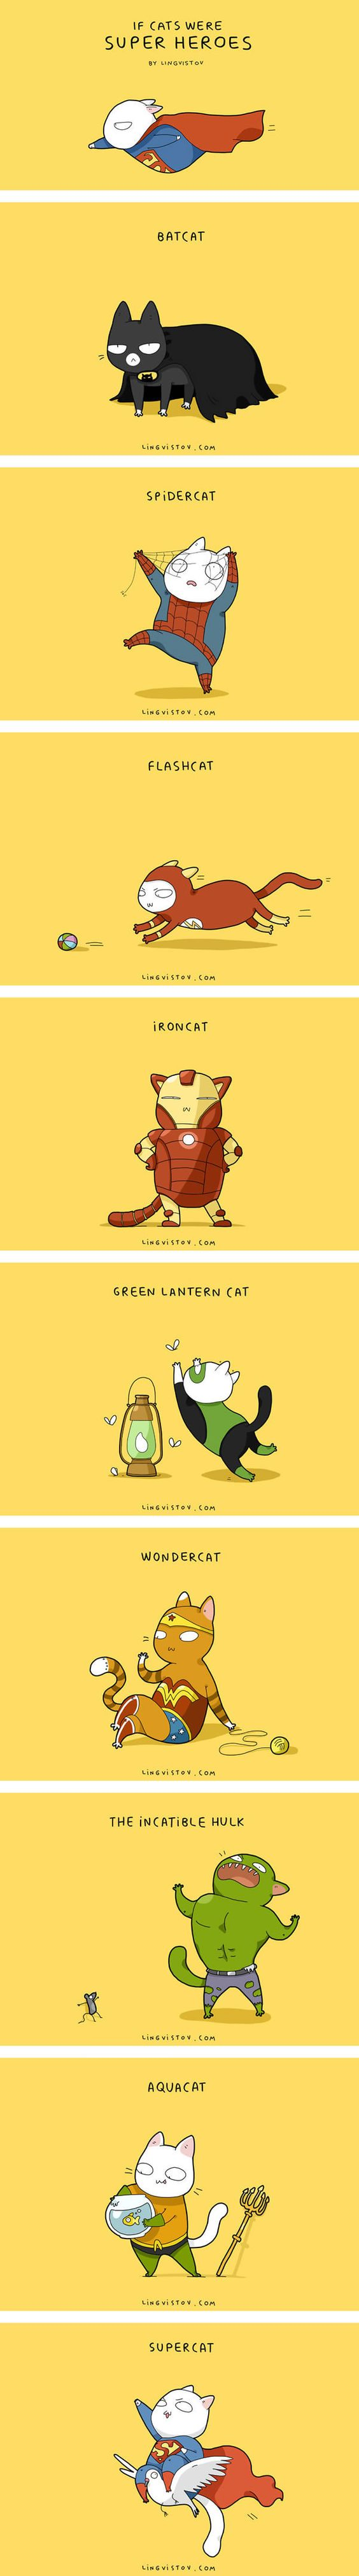 If Cats Were Superheroes, It Would Be Pawesome (by Lingvistov)